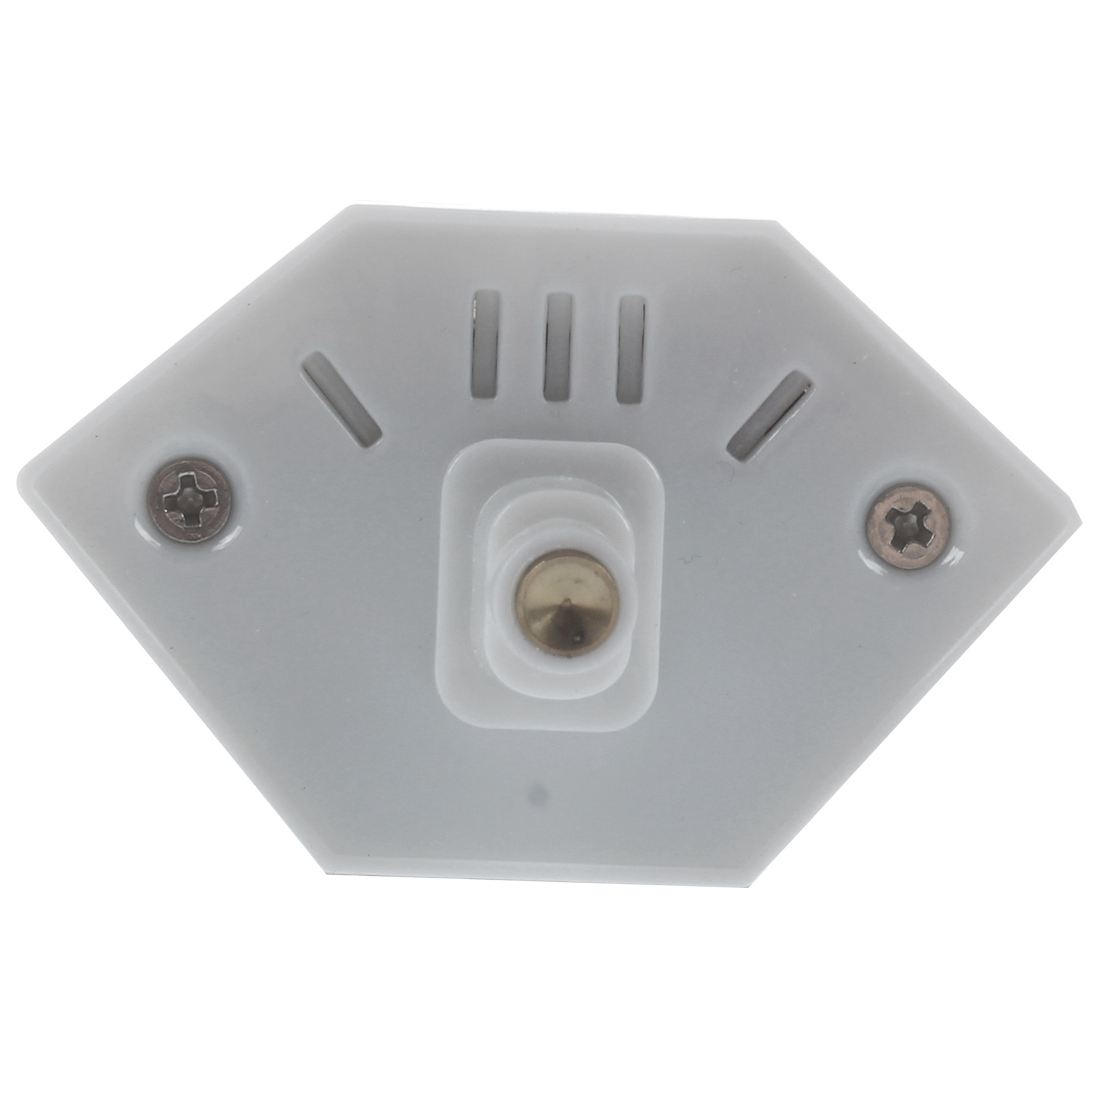 R7S-12W-Regulable-118mm-30-SMD-Bombilla-LED-Blanco-Halogena-lampara-luz-inunO1L8